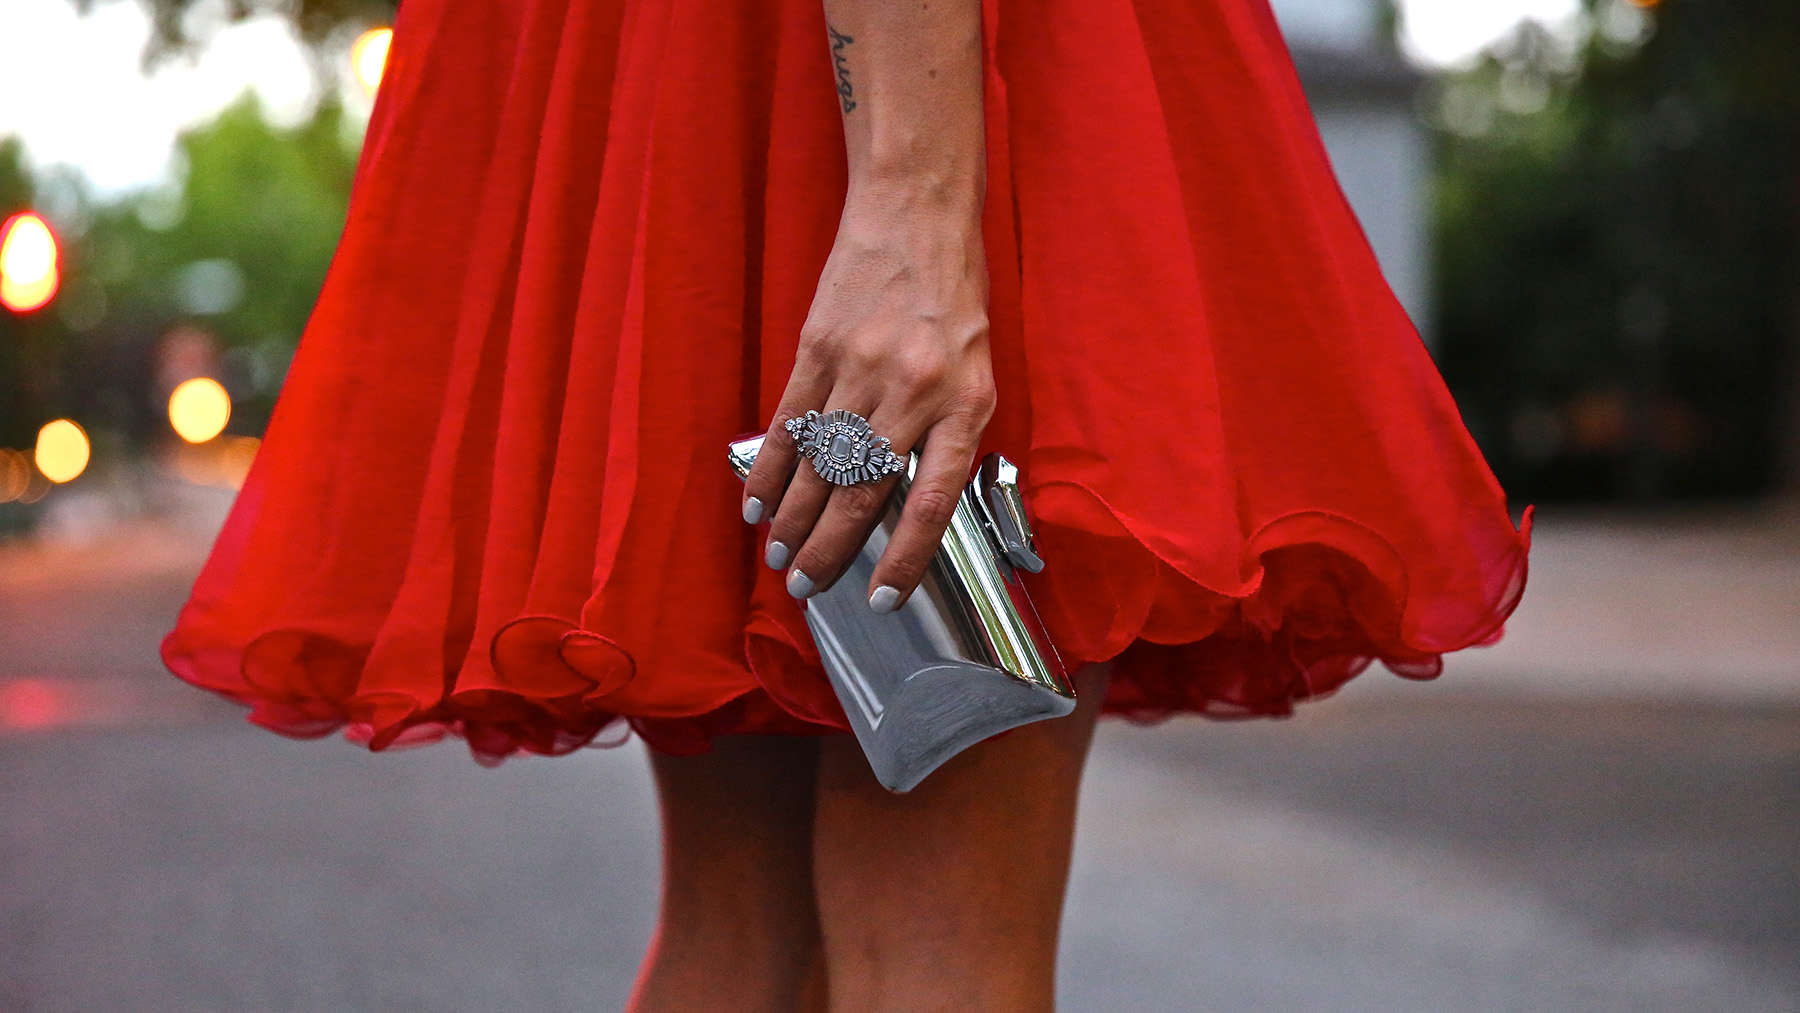 trendy_taste-look-outfit-street_style-ootd-blog-blogger-fashion_spain-moda_españa-red_dress-vestido_rojo-pedreria-coctel-cocktail-boda-wedding-chupa_cuero-leather_jacket-saint_laurent-8